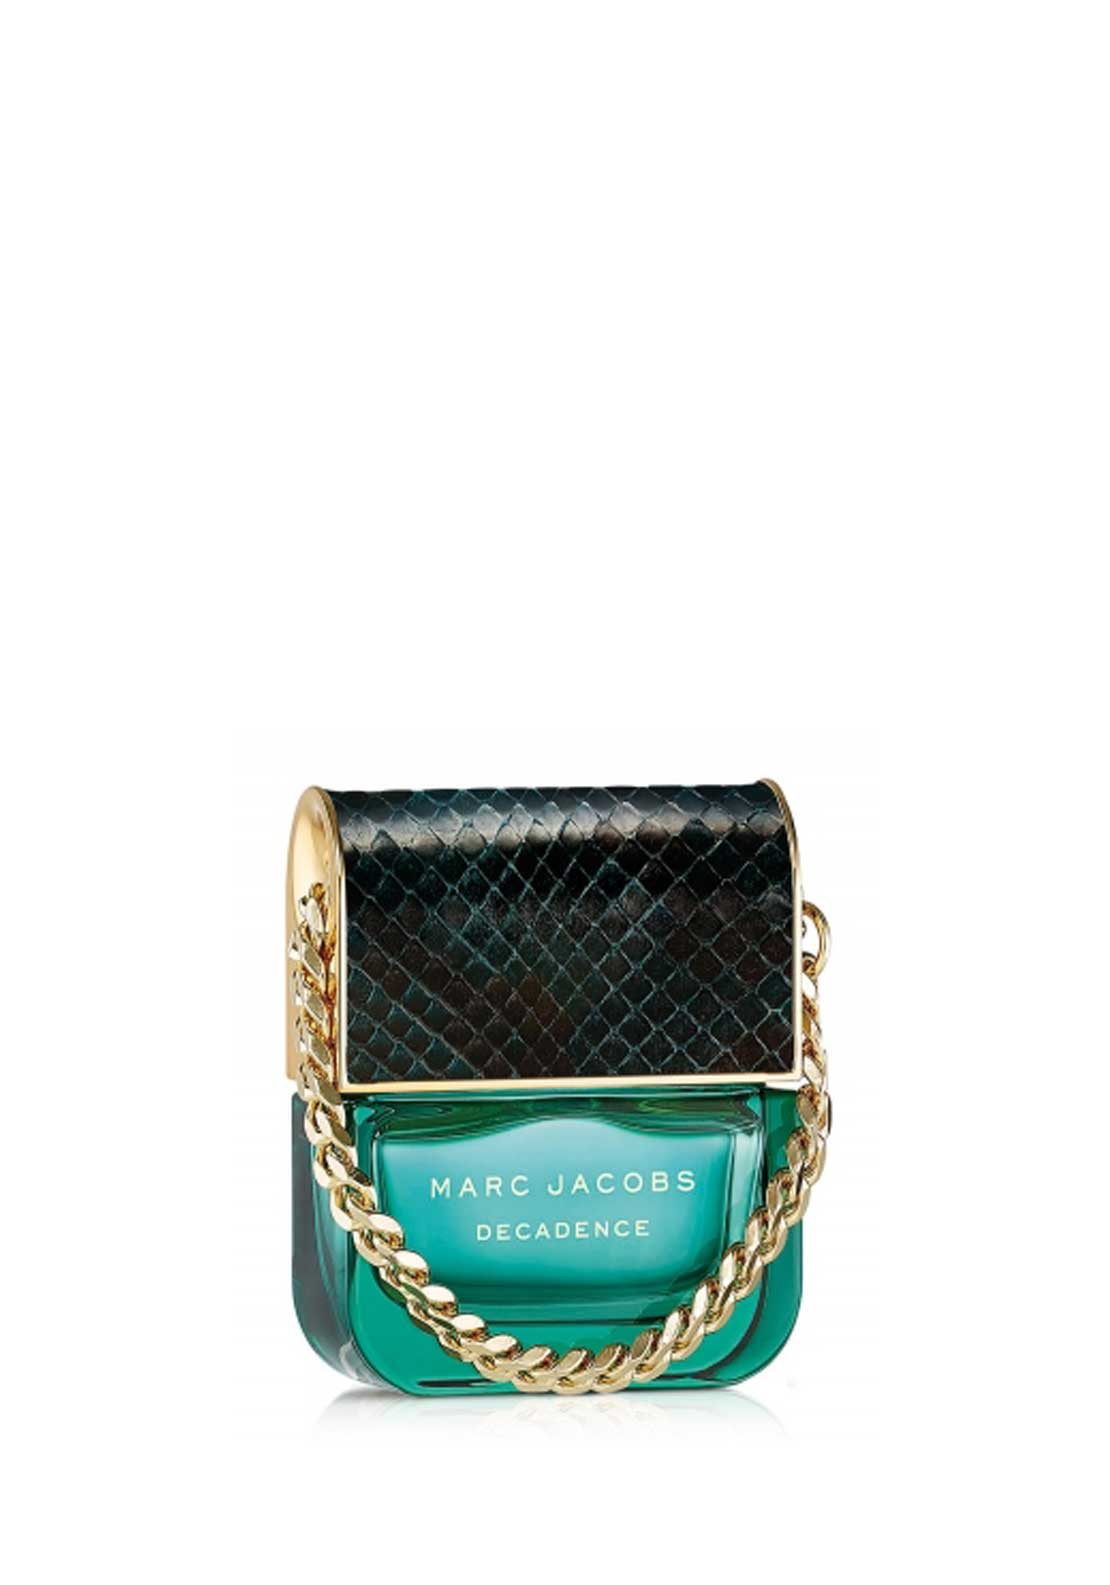 Marc Jacobs Decadence Eau de Parfum For Her, 30ml